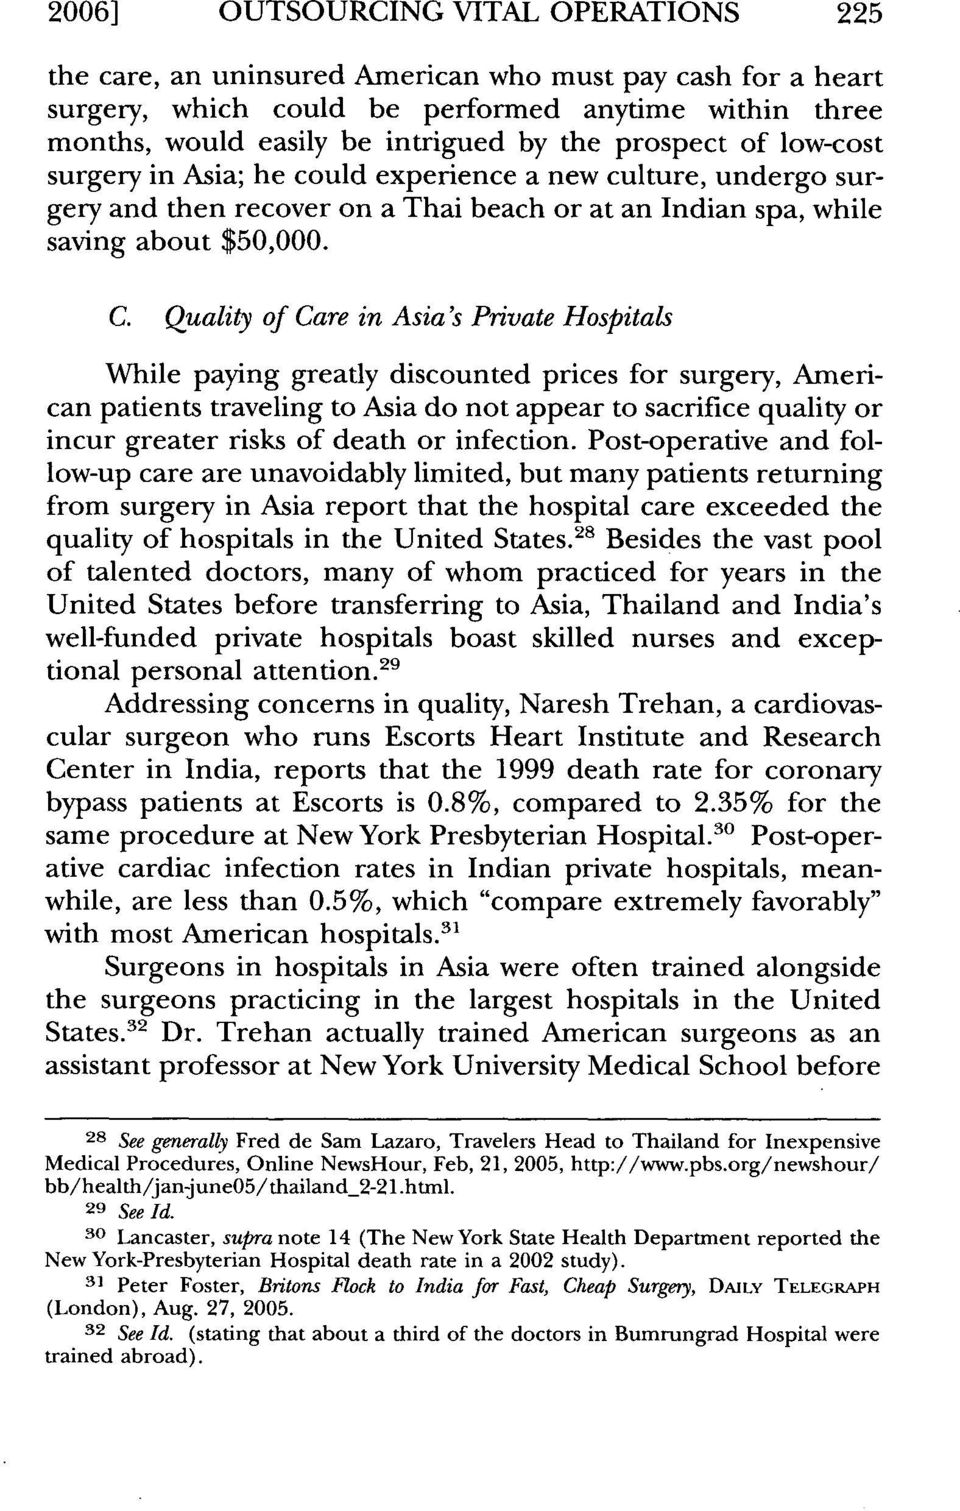 Quality of Care in Asia's Private Hospitals While paying greatly discounted prices for surgery, American patients traveling to Asia do not appear to sacrifice quality or incur greater risks of death